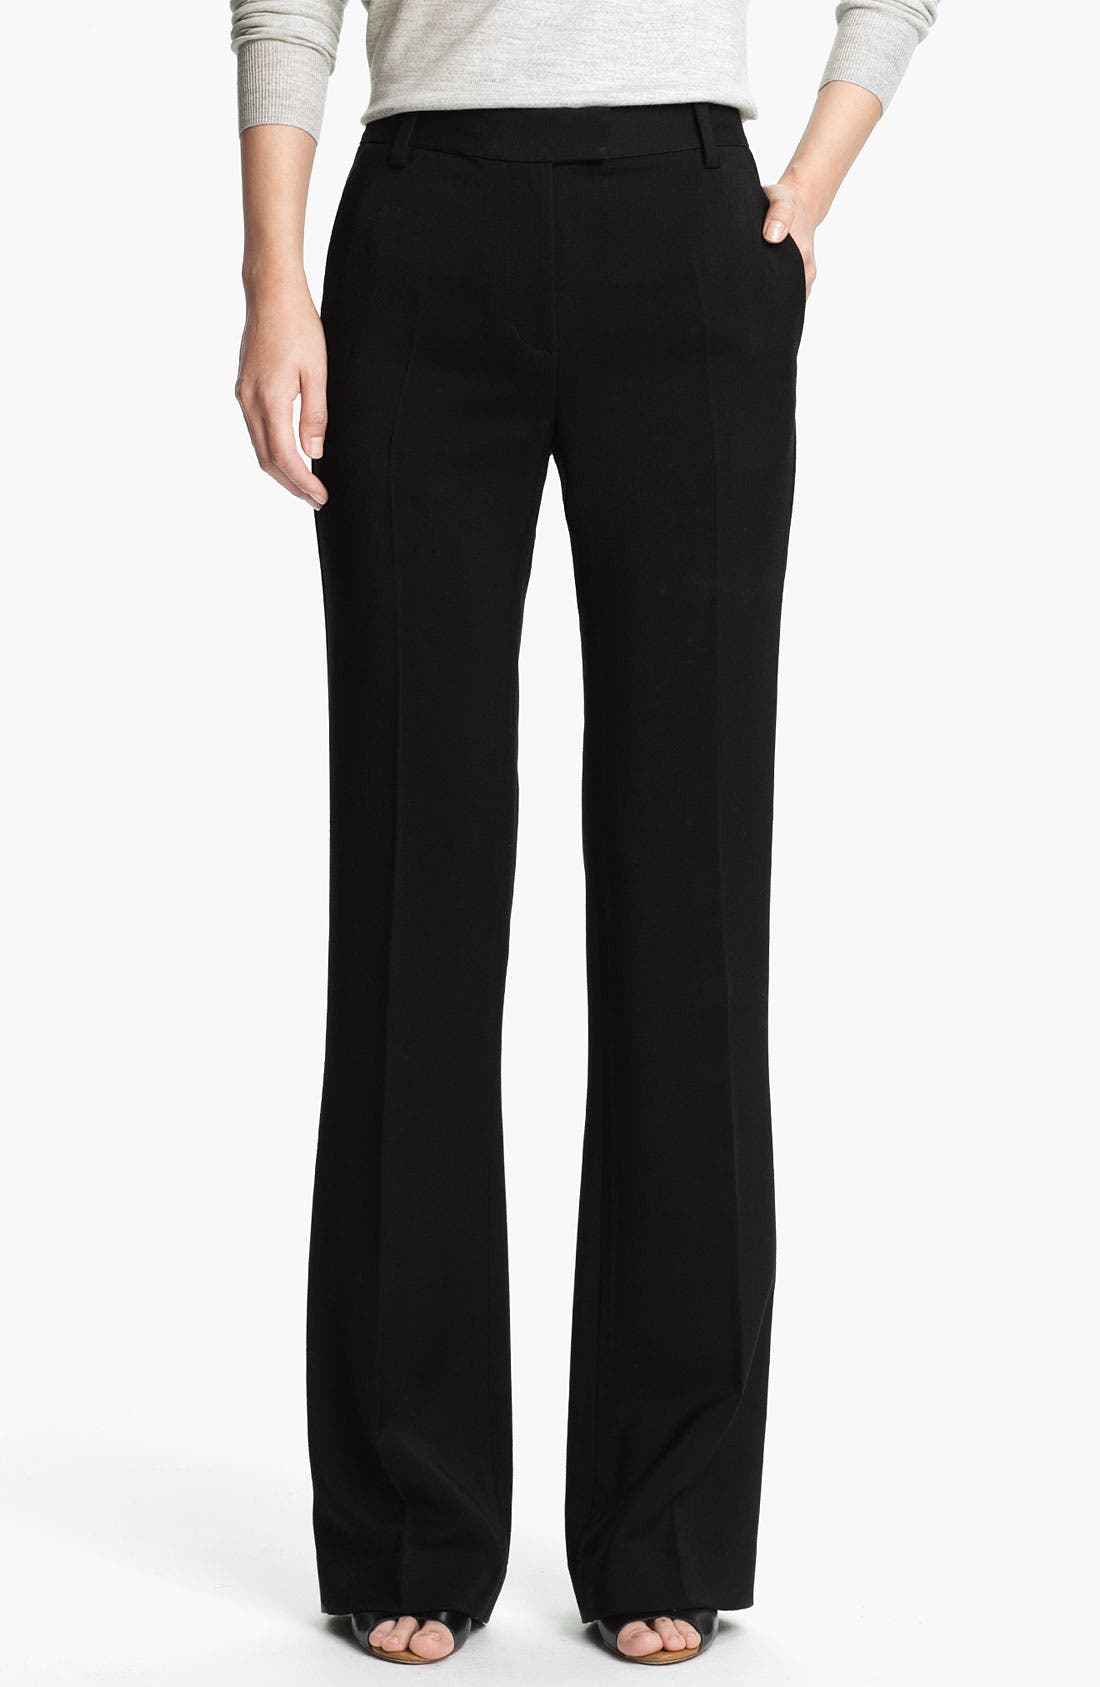 Main Image - 3.1 Phillip Lim Stovepipe Trousers